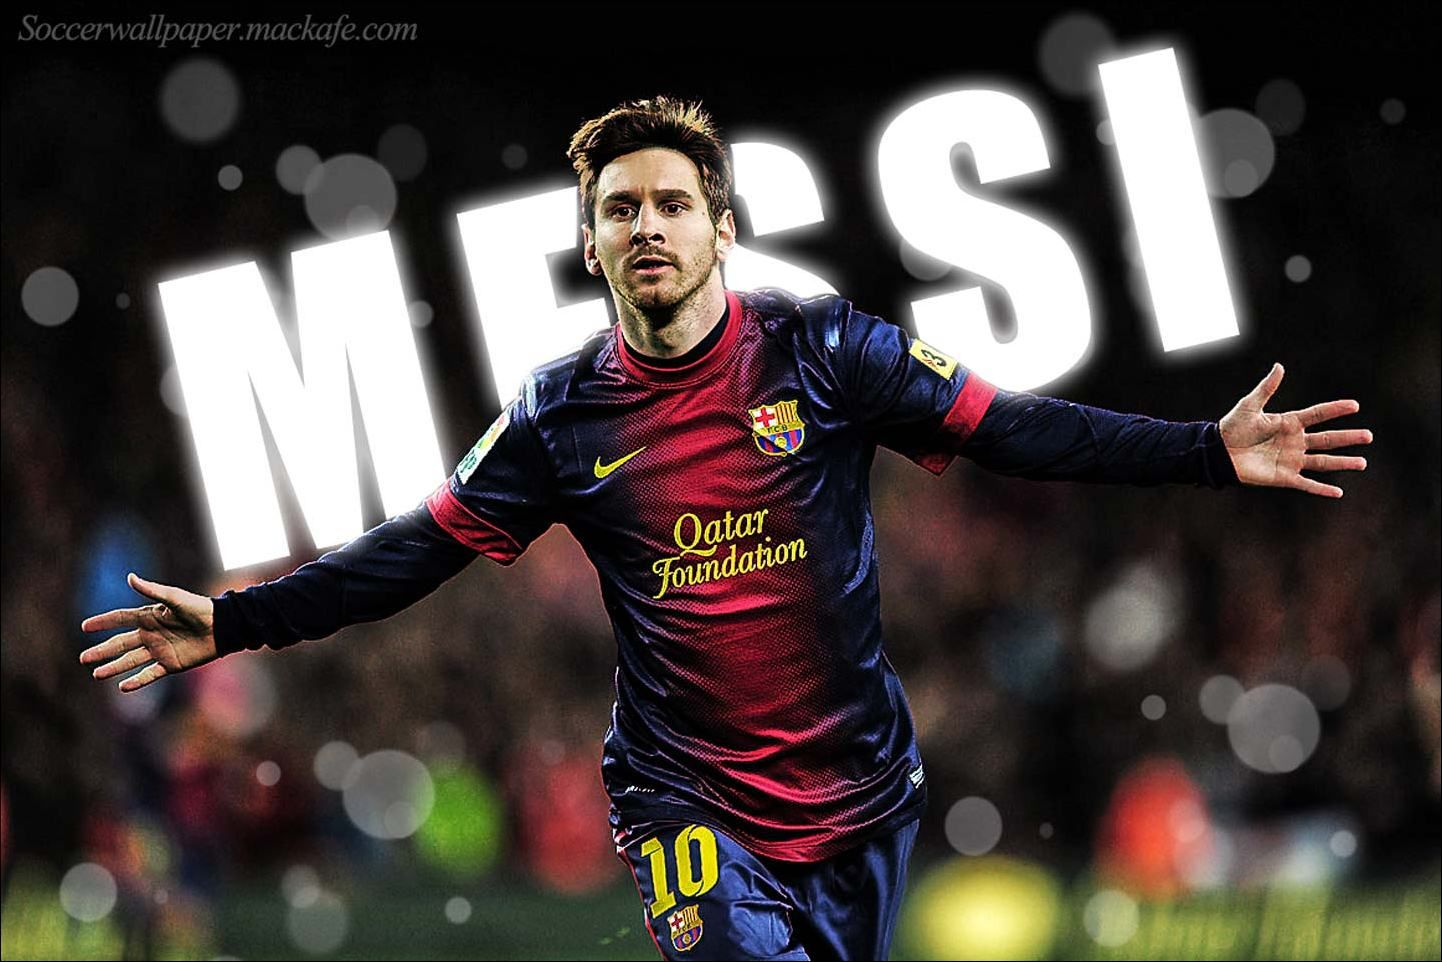 lionel messi wallpaper background download hd | hd wallpapers